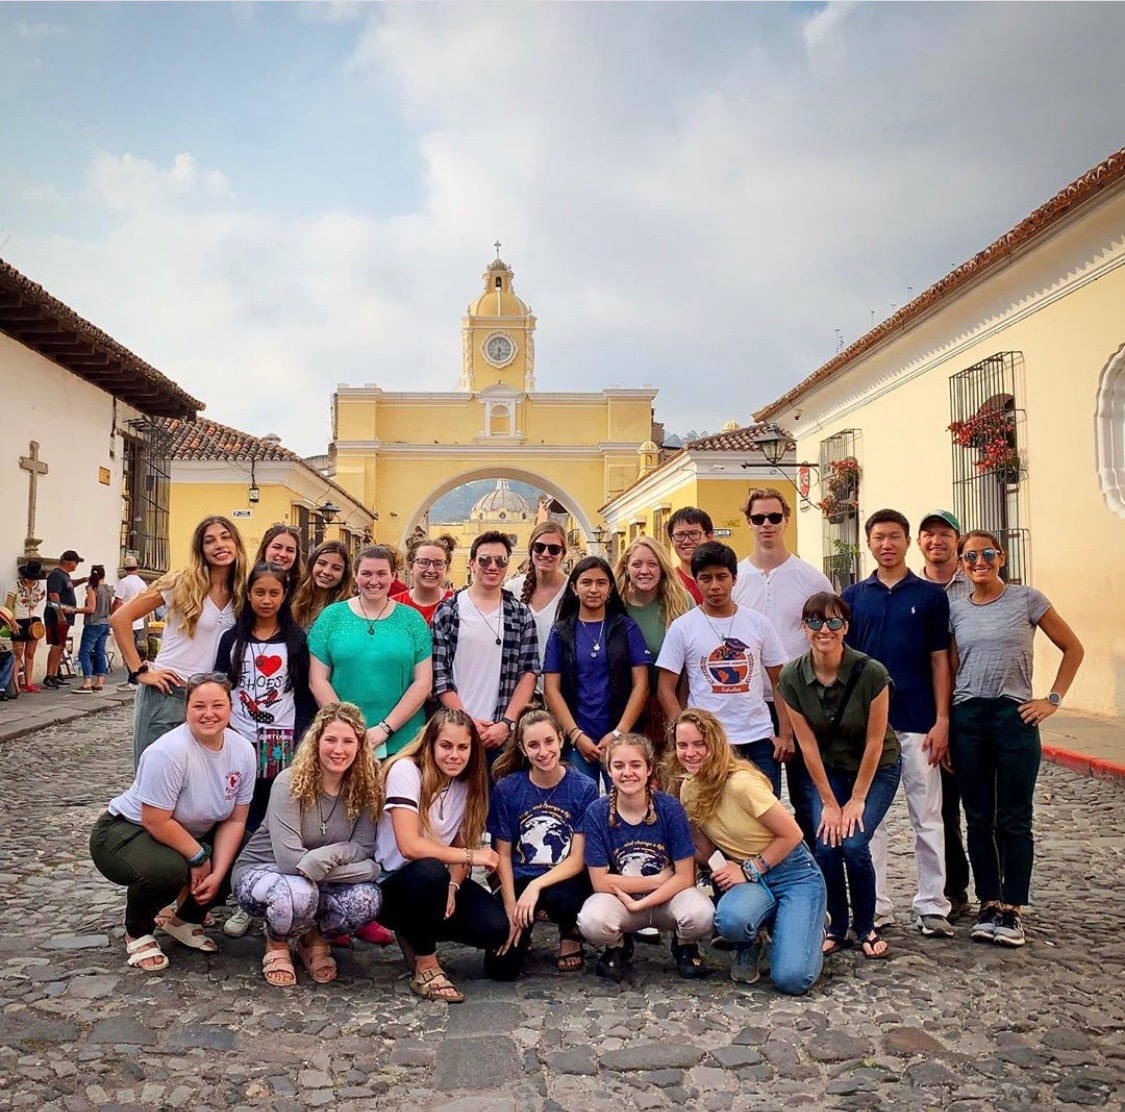 After working in zone 3 communities for 5 days, students took a one day excursion to Antigua where they visited many tourist destinations such as the Santa Catalina Arch.